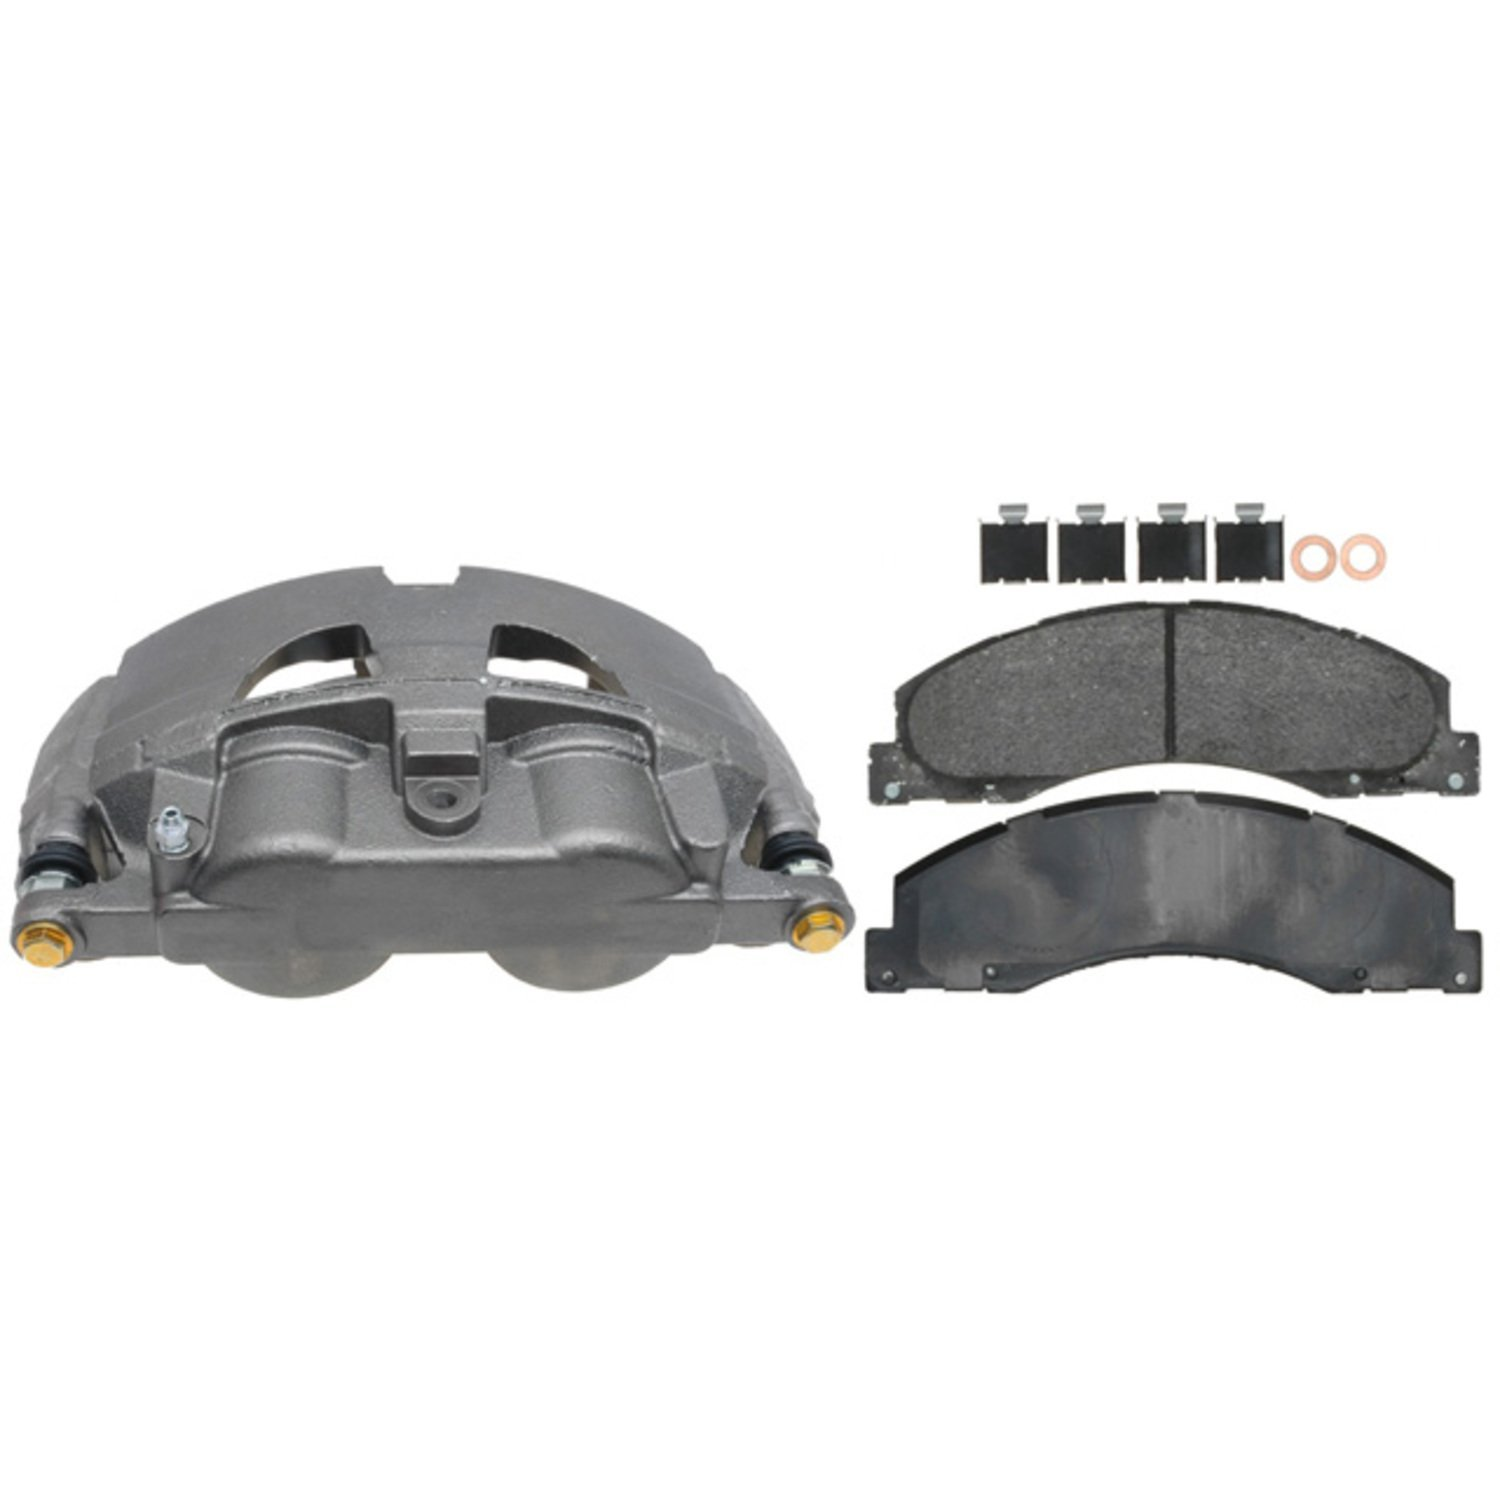 ACDelco 18R2665SV Specialty Front Disc Brake Caliper Assembly with Performance Fleet//Police Pads Remanufactured Loaded